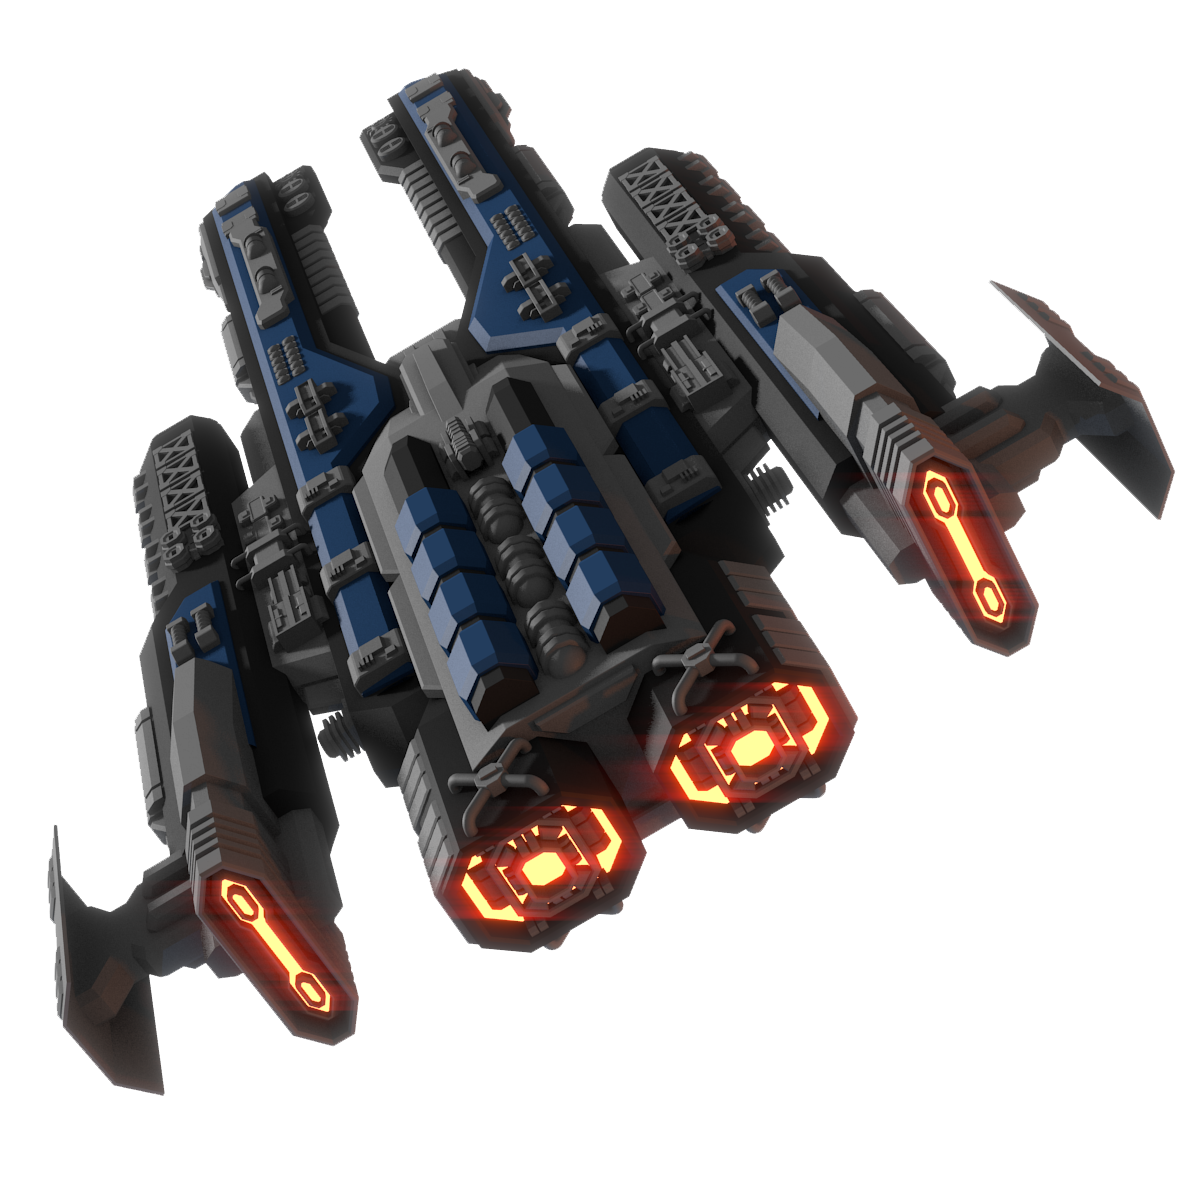 Futuristic spaceship png. Images transparent free download